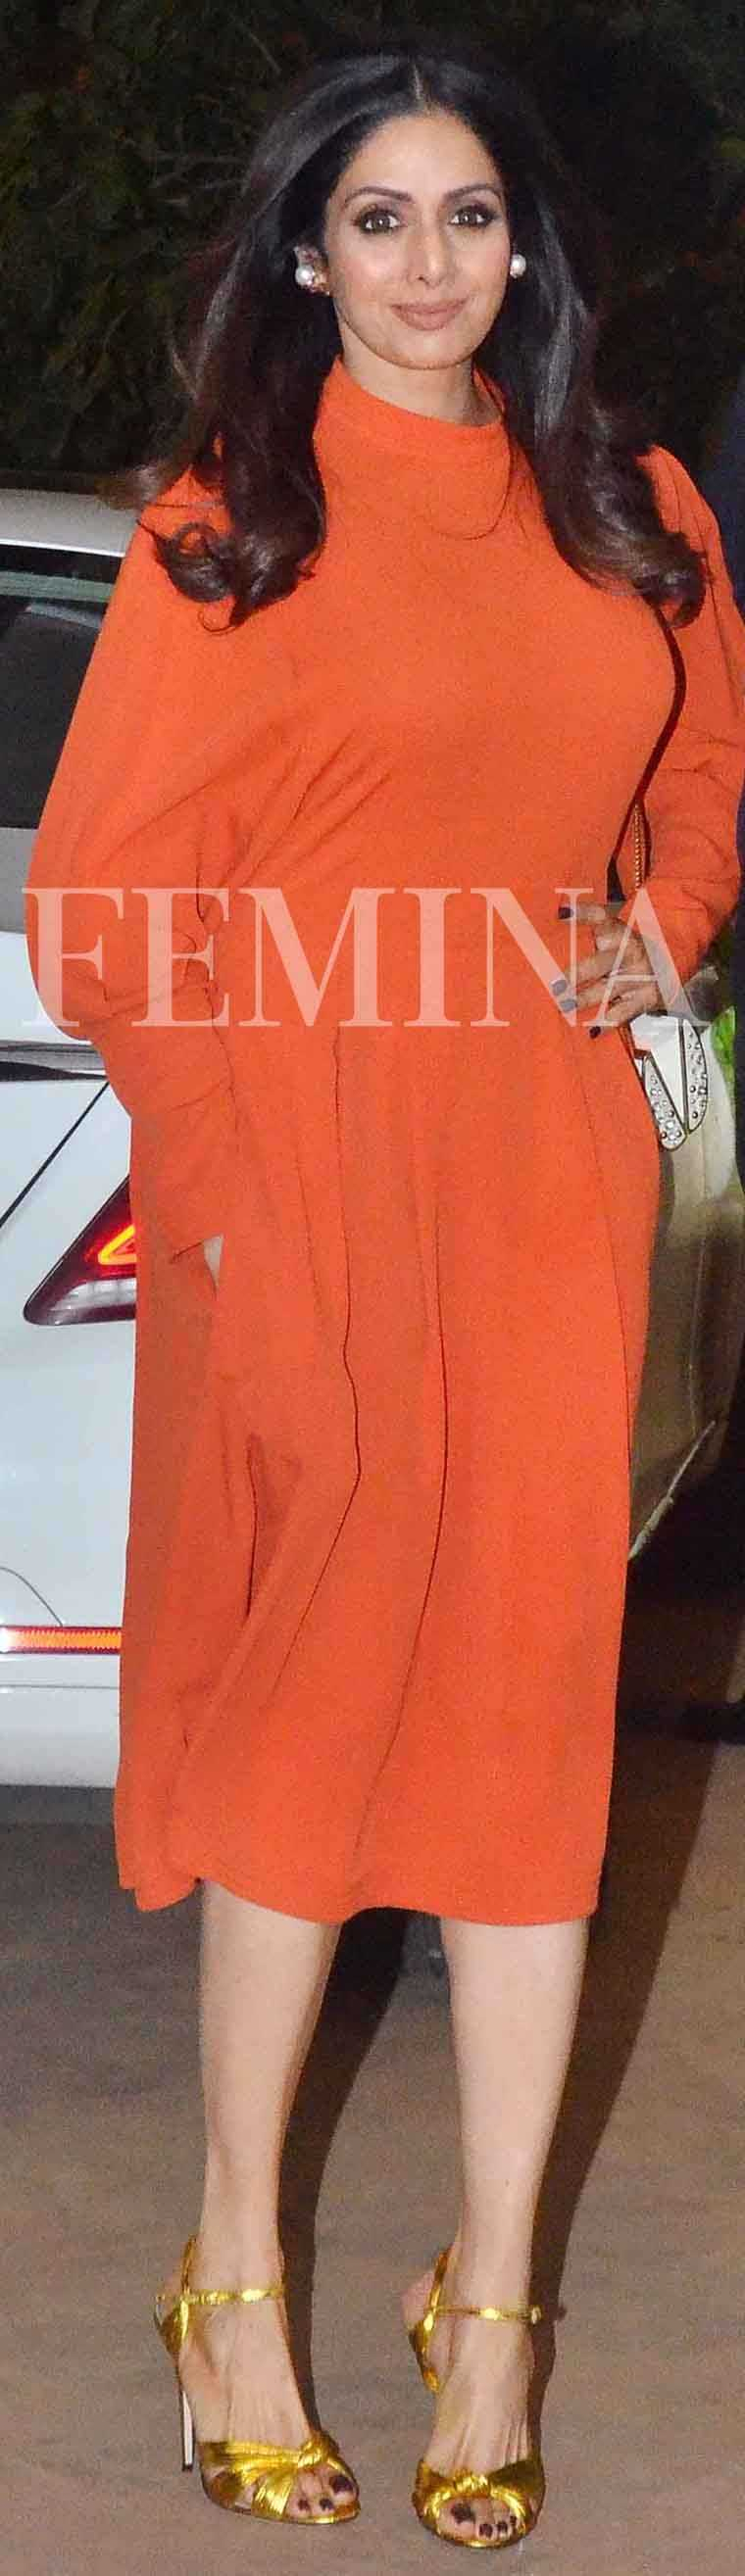 Sridevi is a surprise entry into our list this week looking pretty darn good in her tangerine midi dressed paired with gold stilettoes.